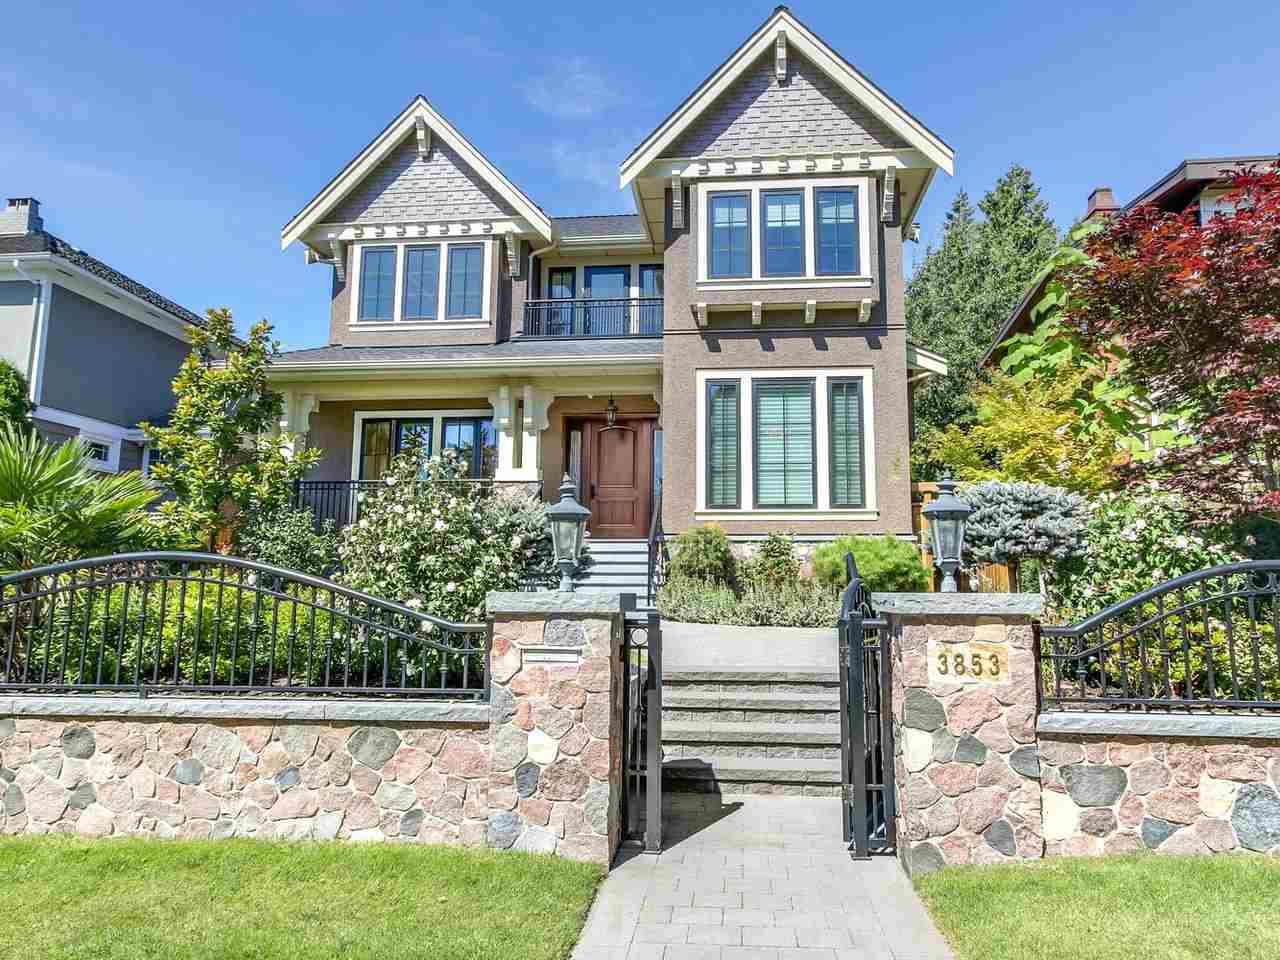 Removed: 3853 W 38th Avenue, Vancouver, BC - Removed on 2018-04-01 05:39:14